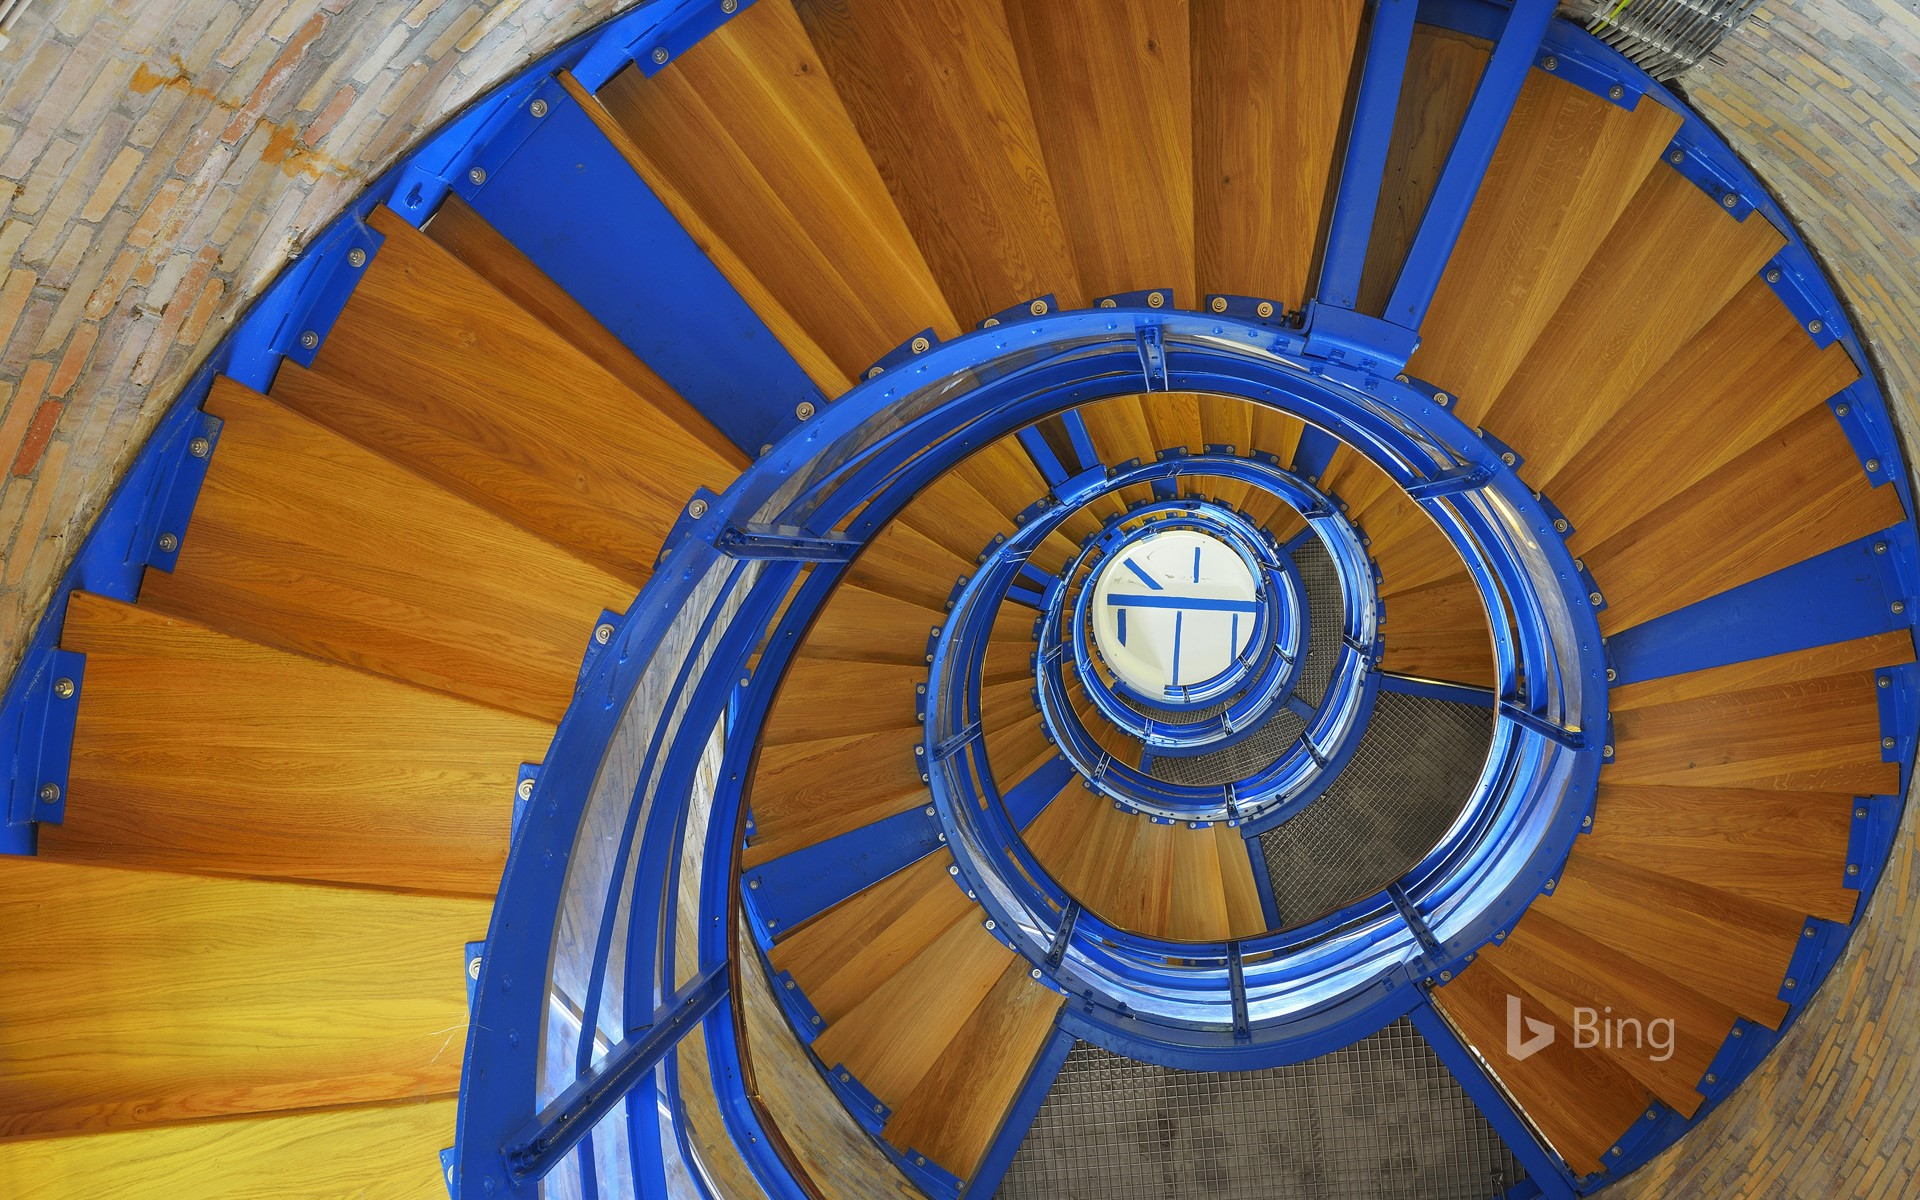 Spiral staircase in the Flügge lighthouse on the island of Fehmarn, Schleswig-Holstein, Germany